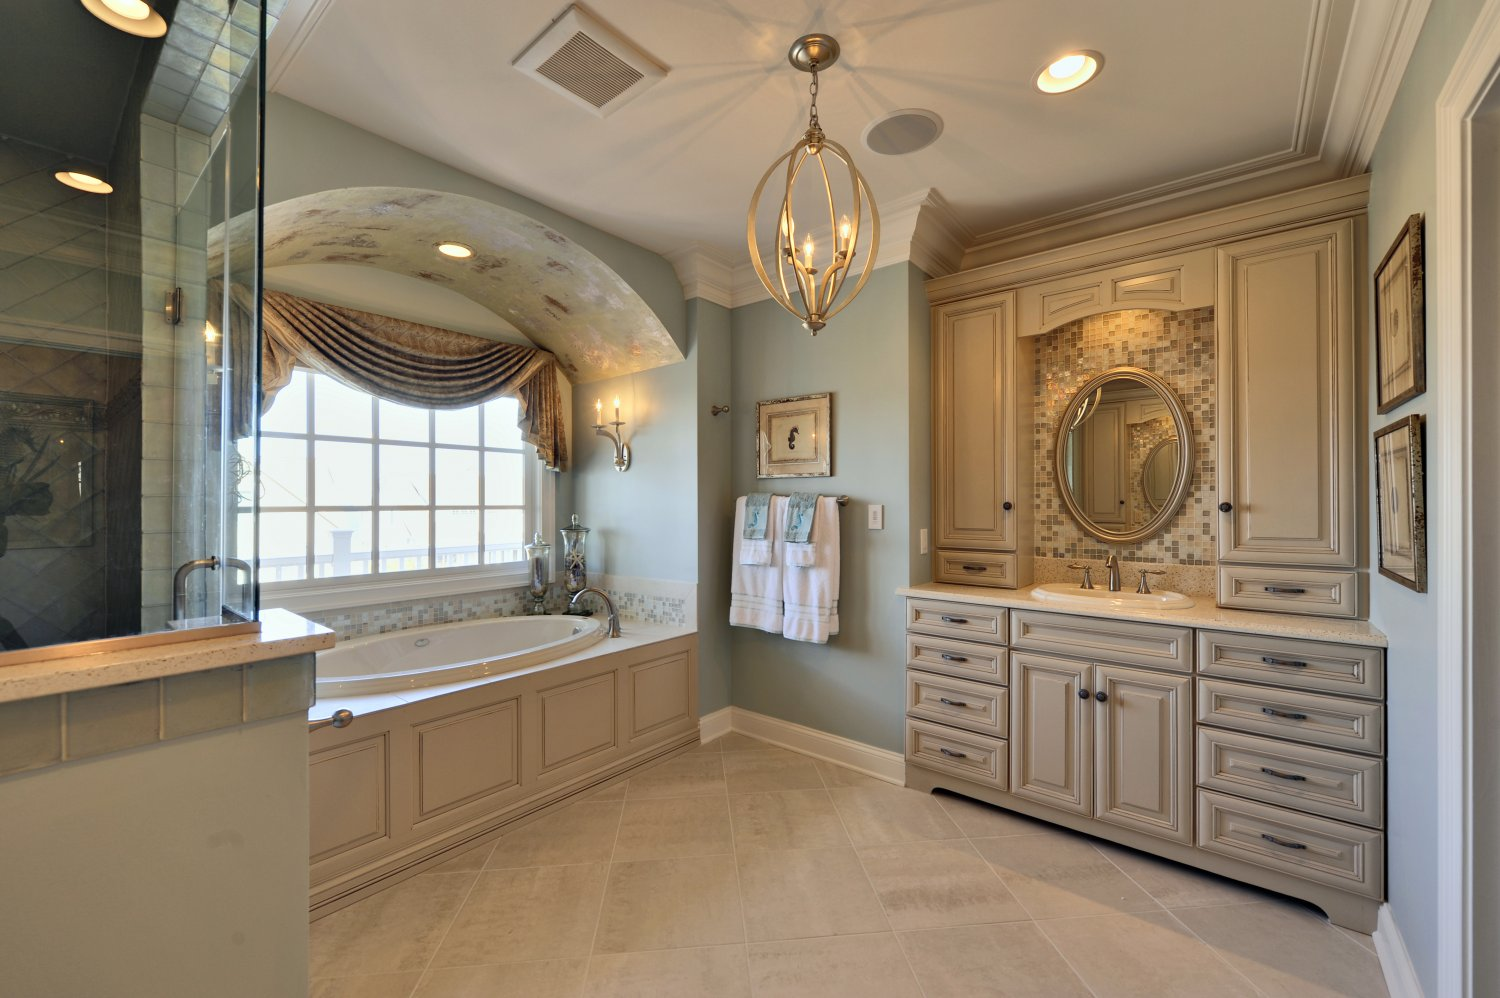 Cape shores photo gallery of custom delaware new homes by echelon custom homes Master bathroom design photo gallery